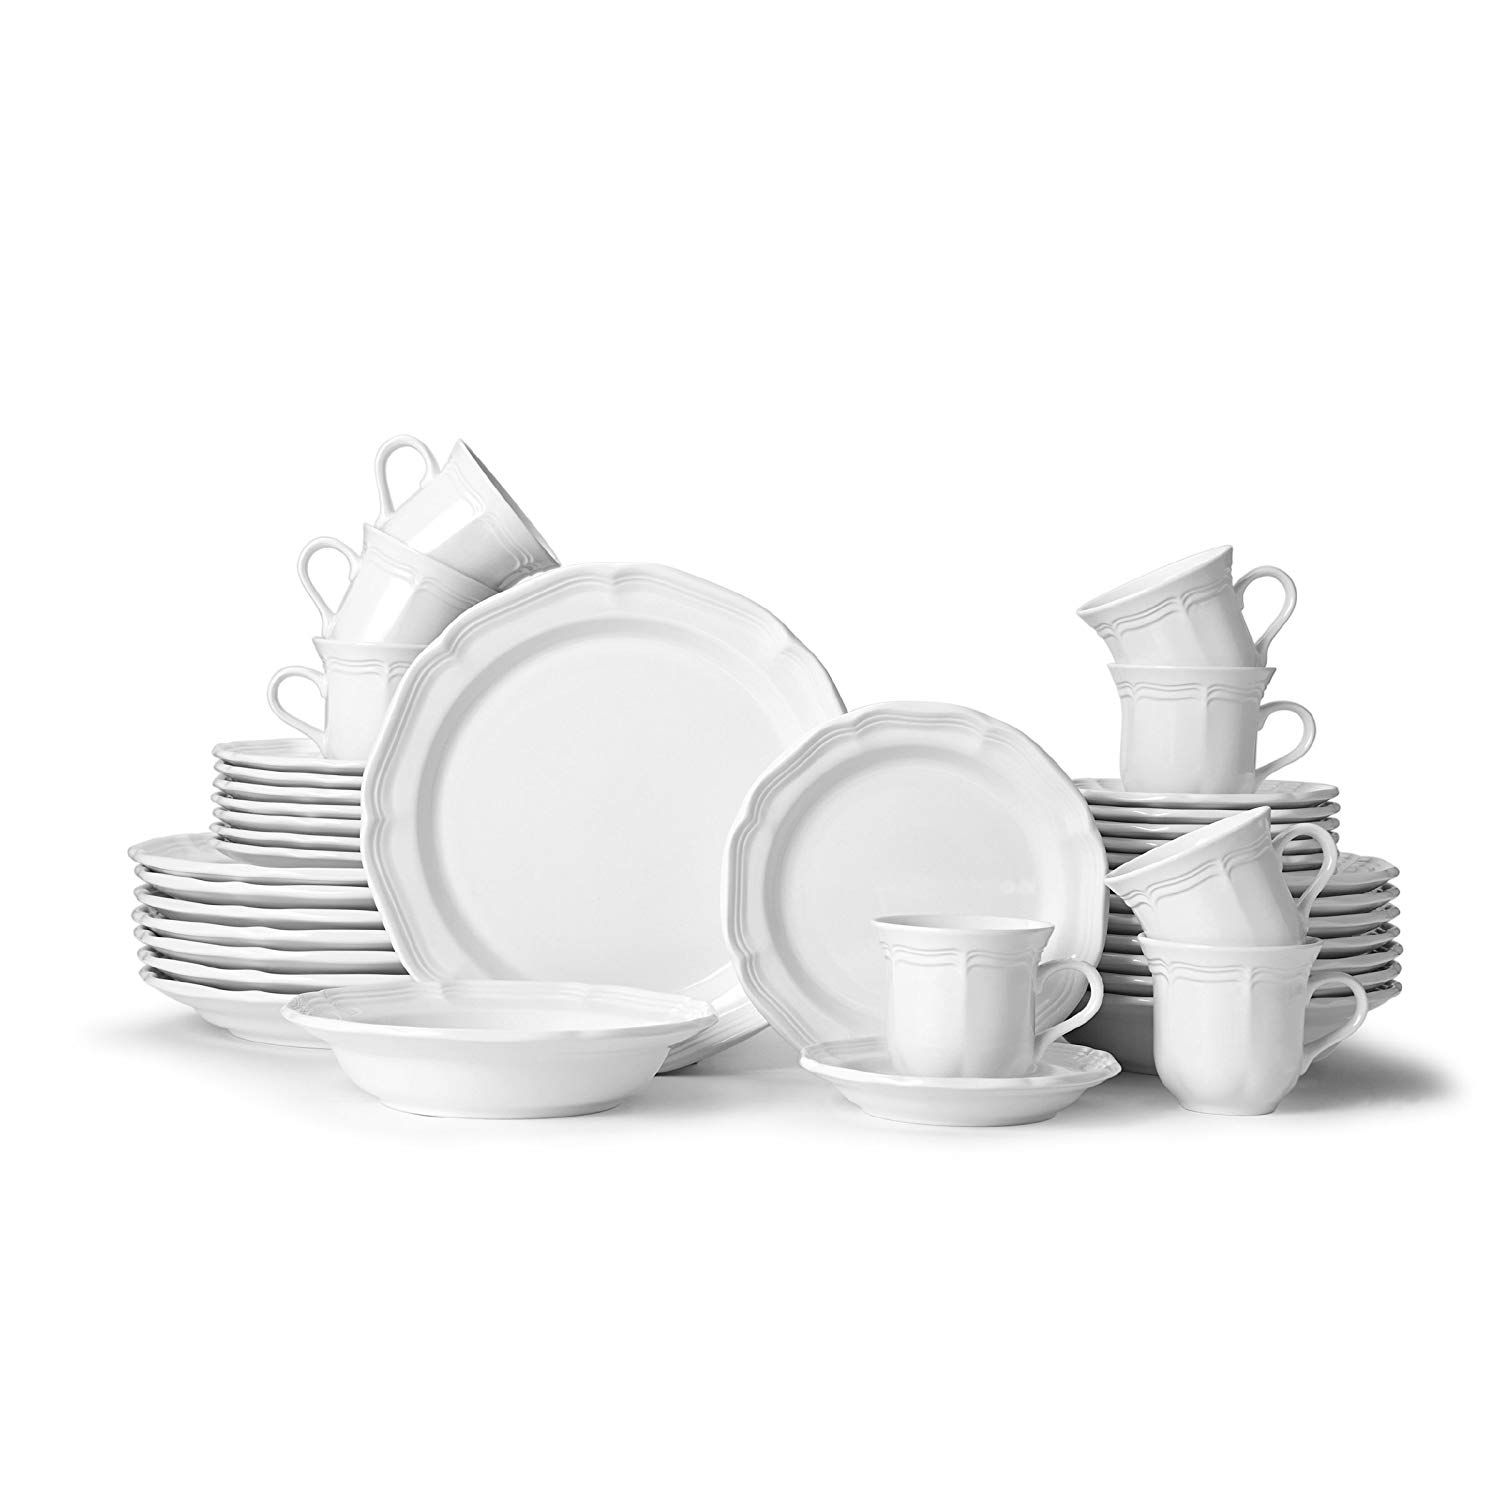 Pin It For Later Read More On French Provincial Kitchen Dinnerware Mikasa French Countryside 40 Piece Din Mikasa French Countryside Dinnerware Set Dinnerware